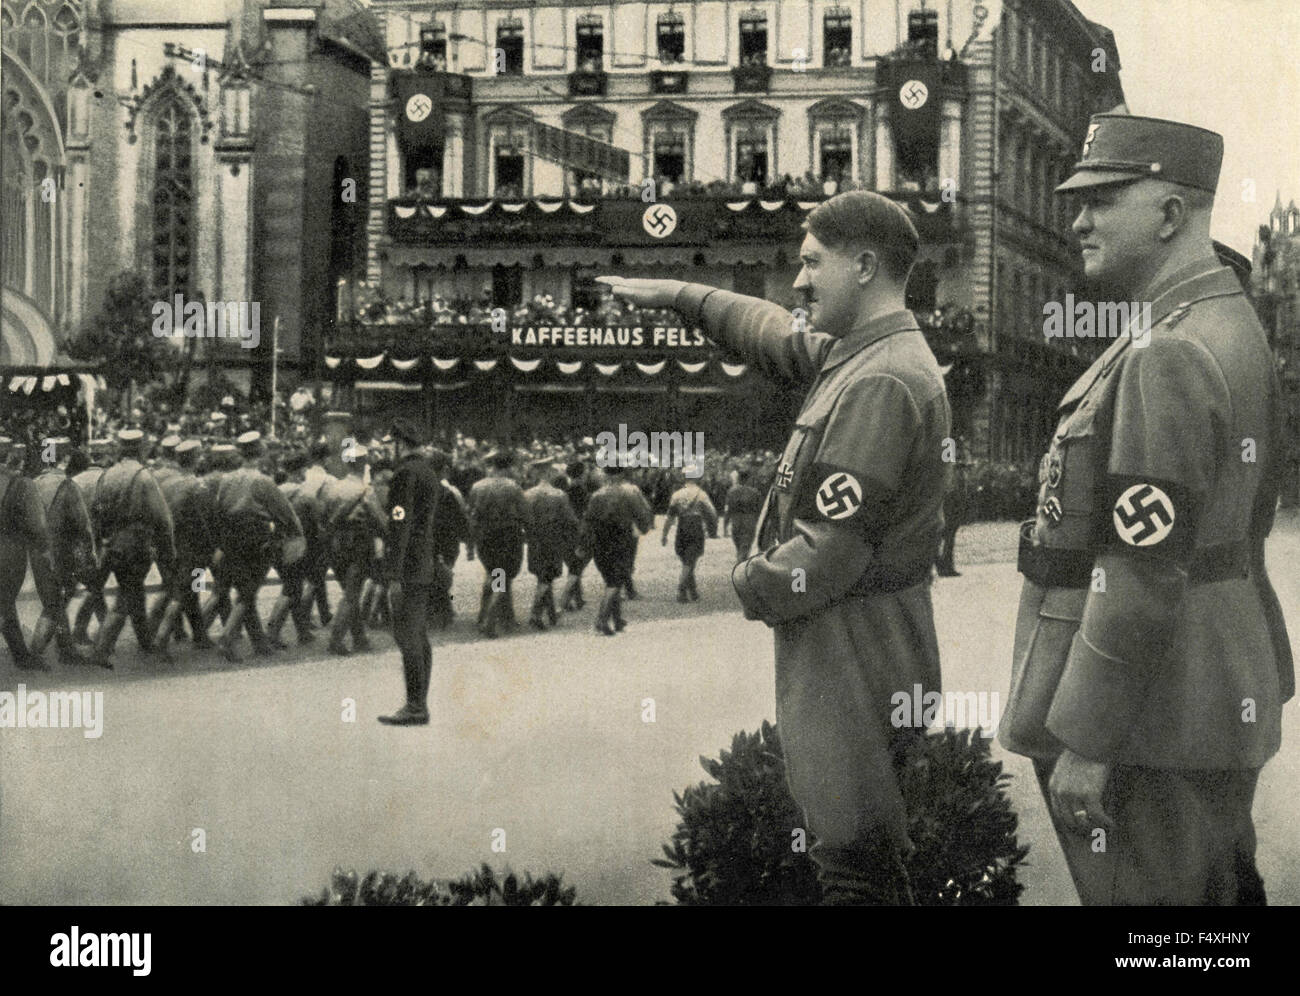 Adolf Hitler during a Nazi military parade in Leipzig, Germany - Stock Image